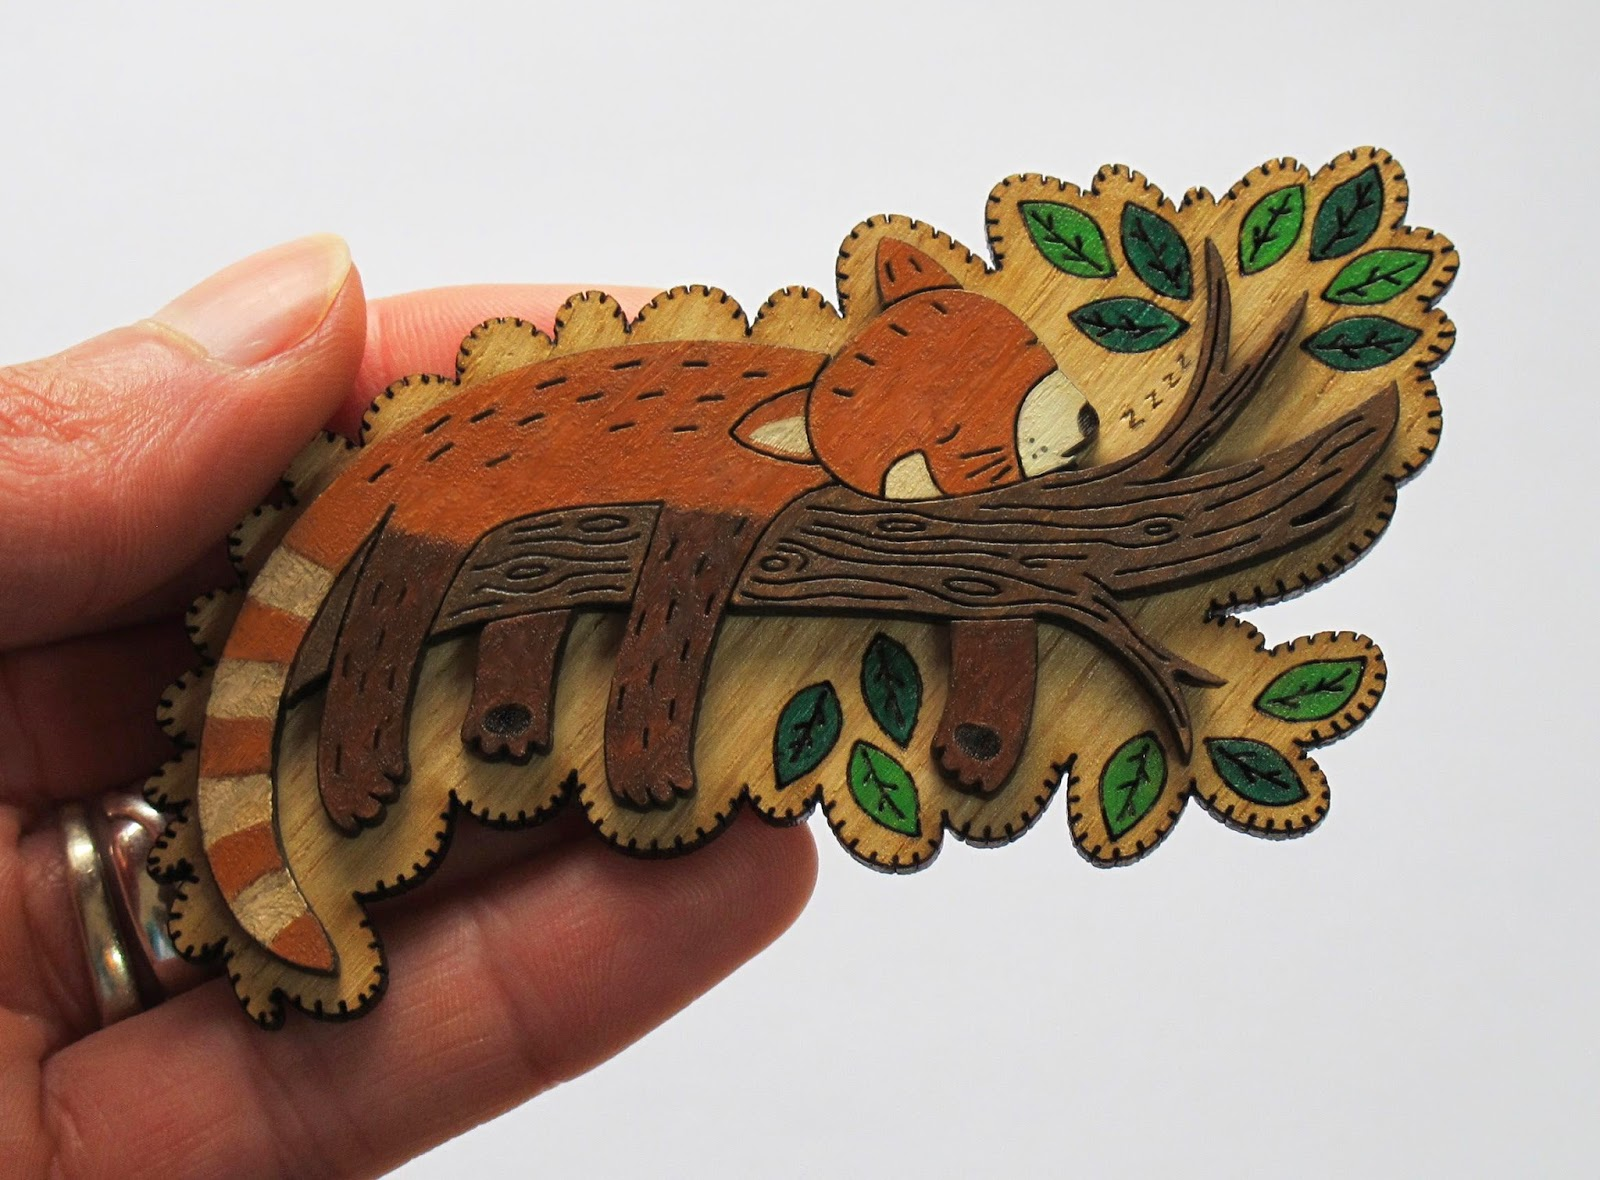 http://folksy.com/items/6192471-Milo-the-Sleeping-Red-Panda-wooden-brooch